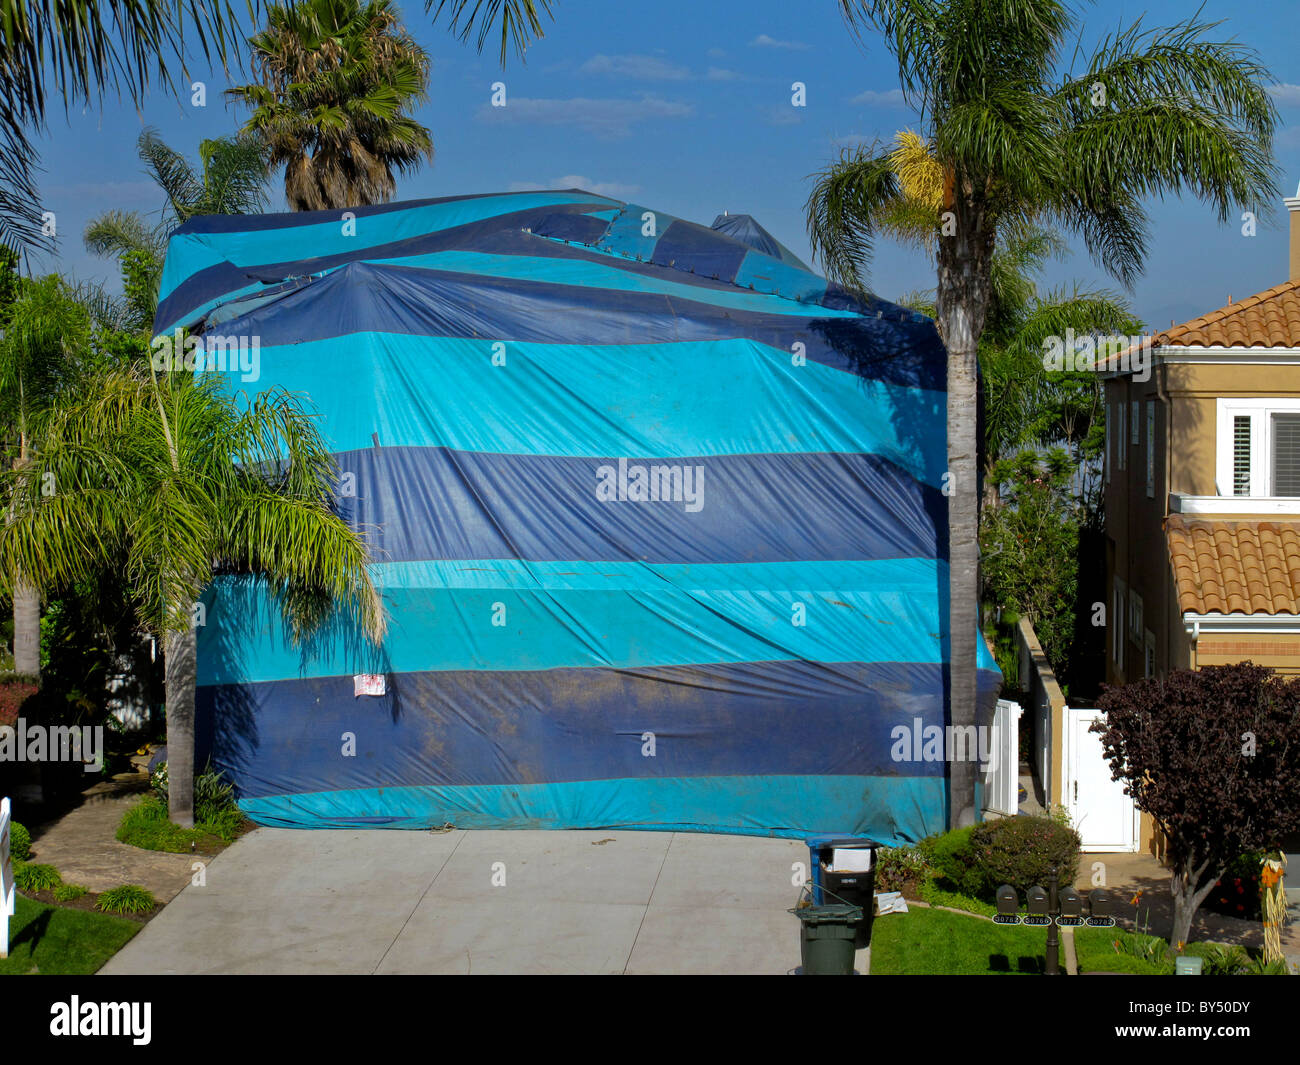 A house in Southern California is wrapped in a gassproof tent and filled with poisonous cyanide gas to kill termite - Stock Image